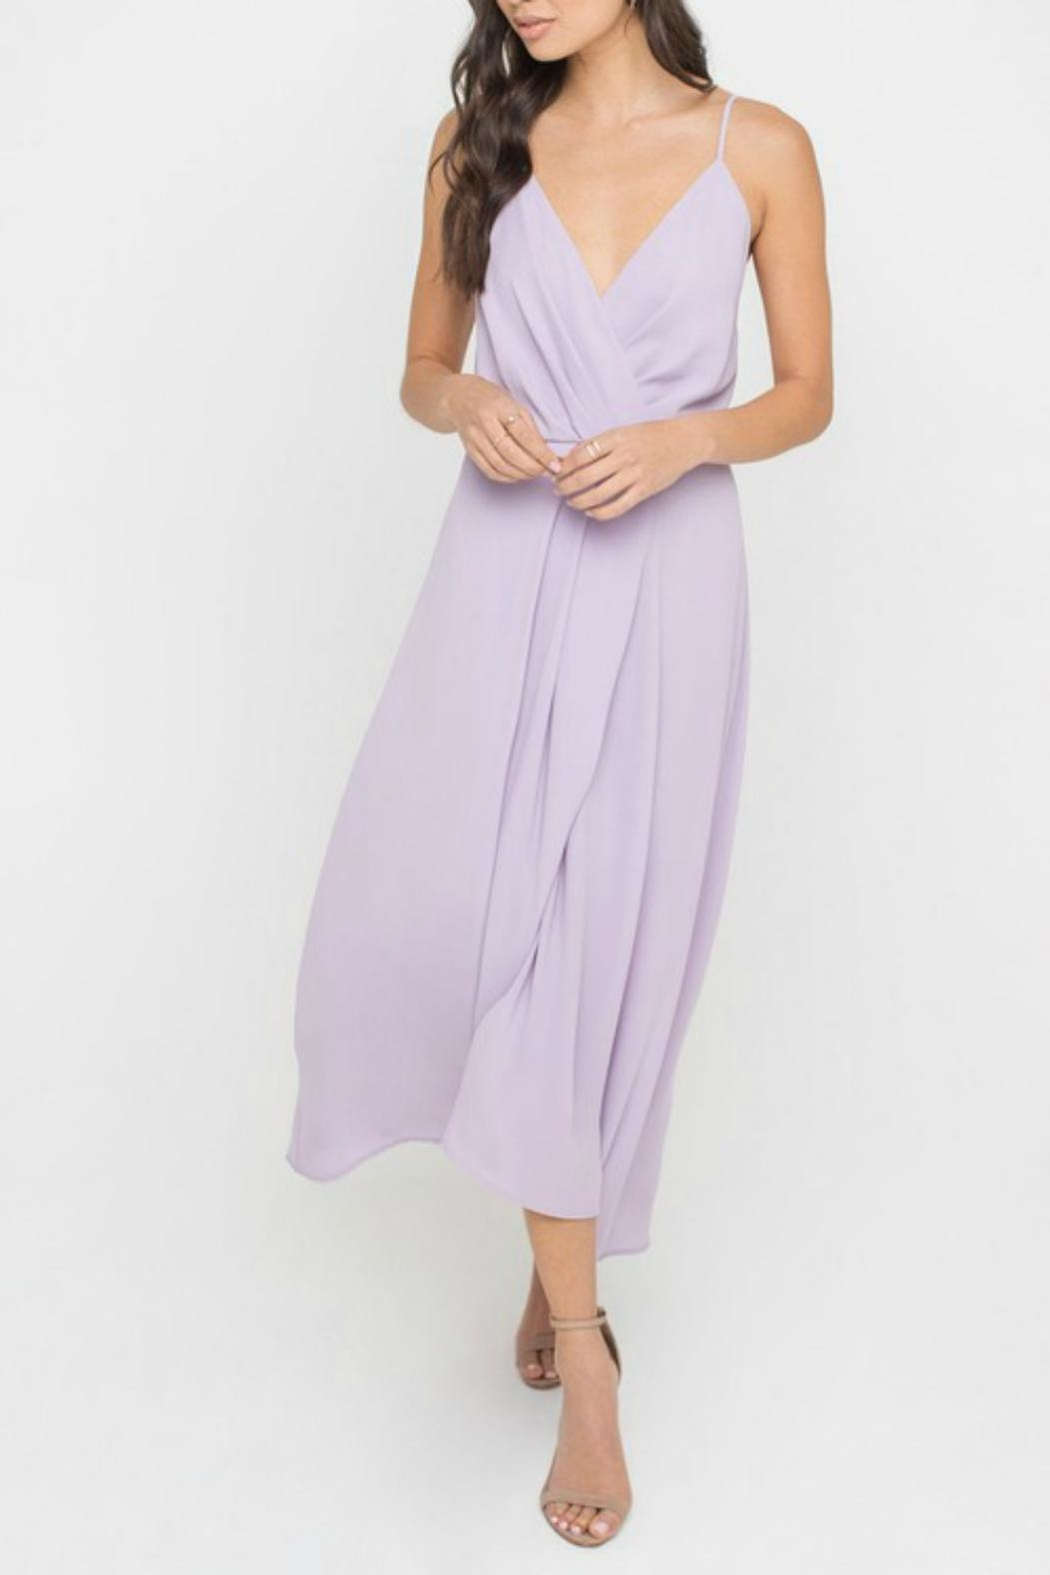 Pretty Little Things Minimalistic Midi Dress - Front Cropped Image